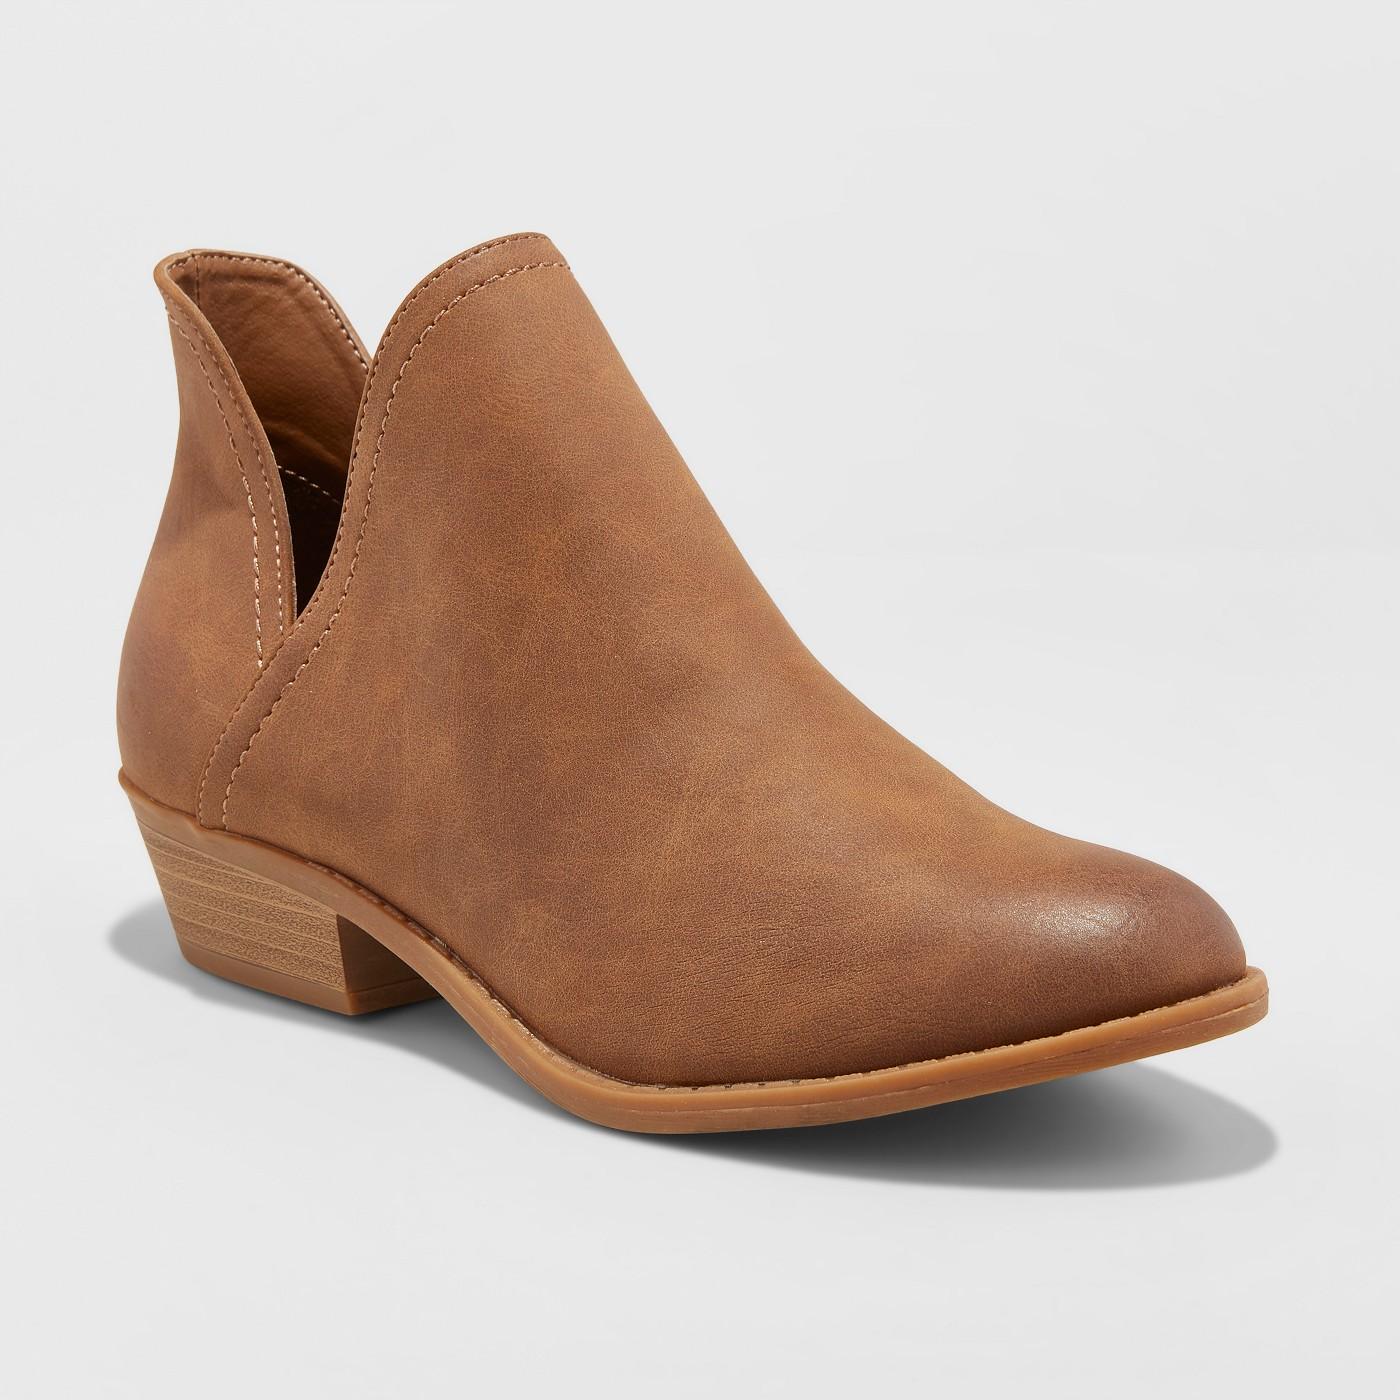 Brown Boot (24.99!)